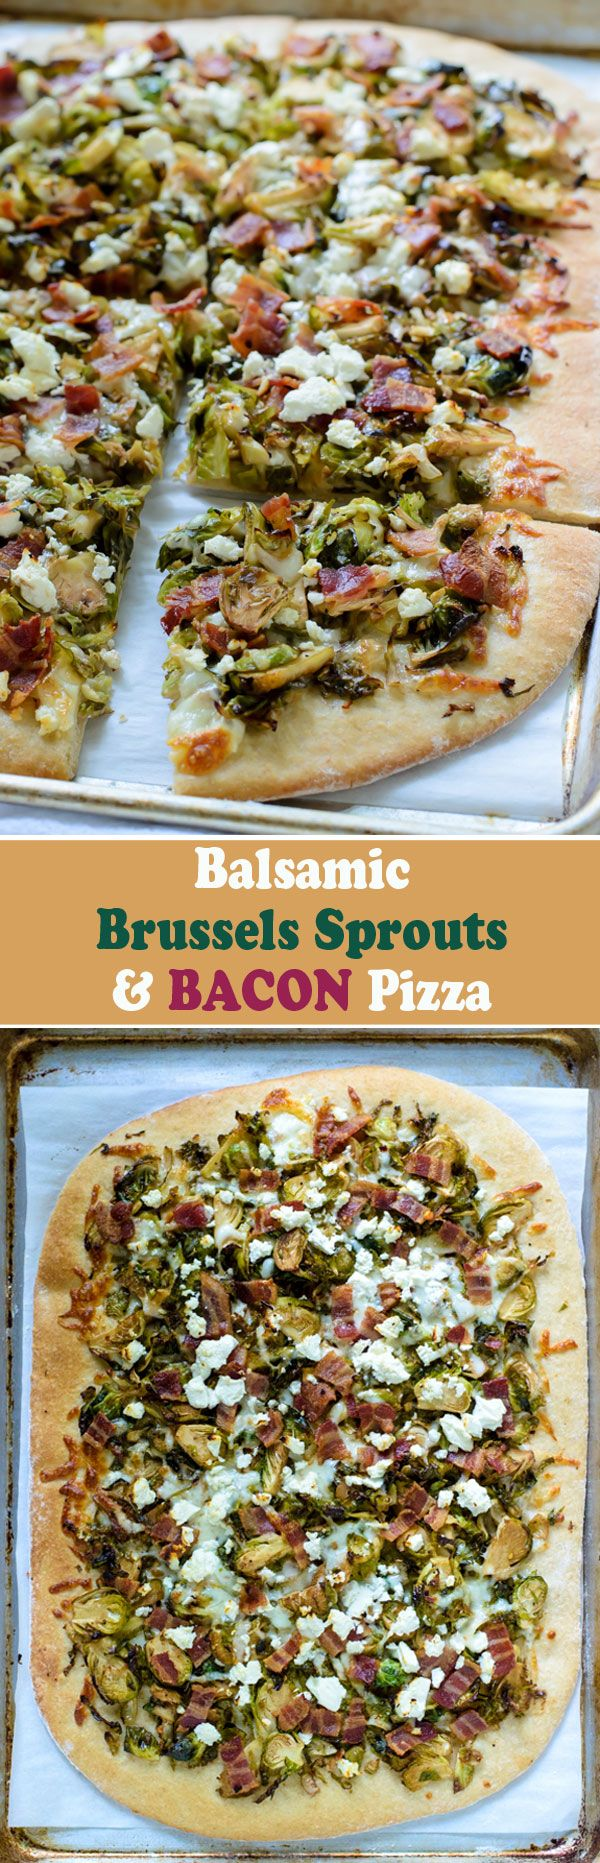 Balsamic Brussels Sprouts and Bacon Pizza